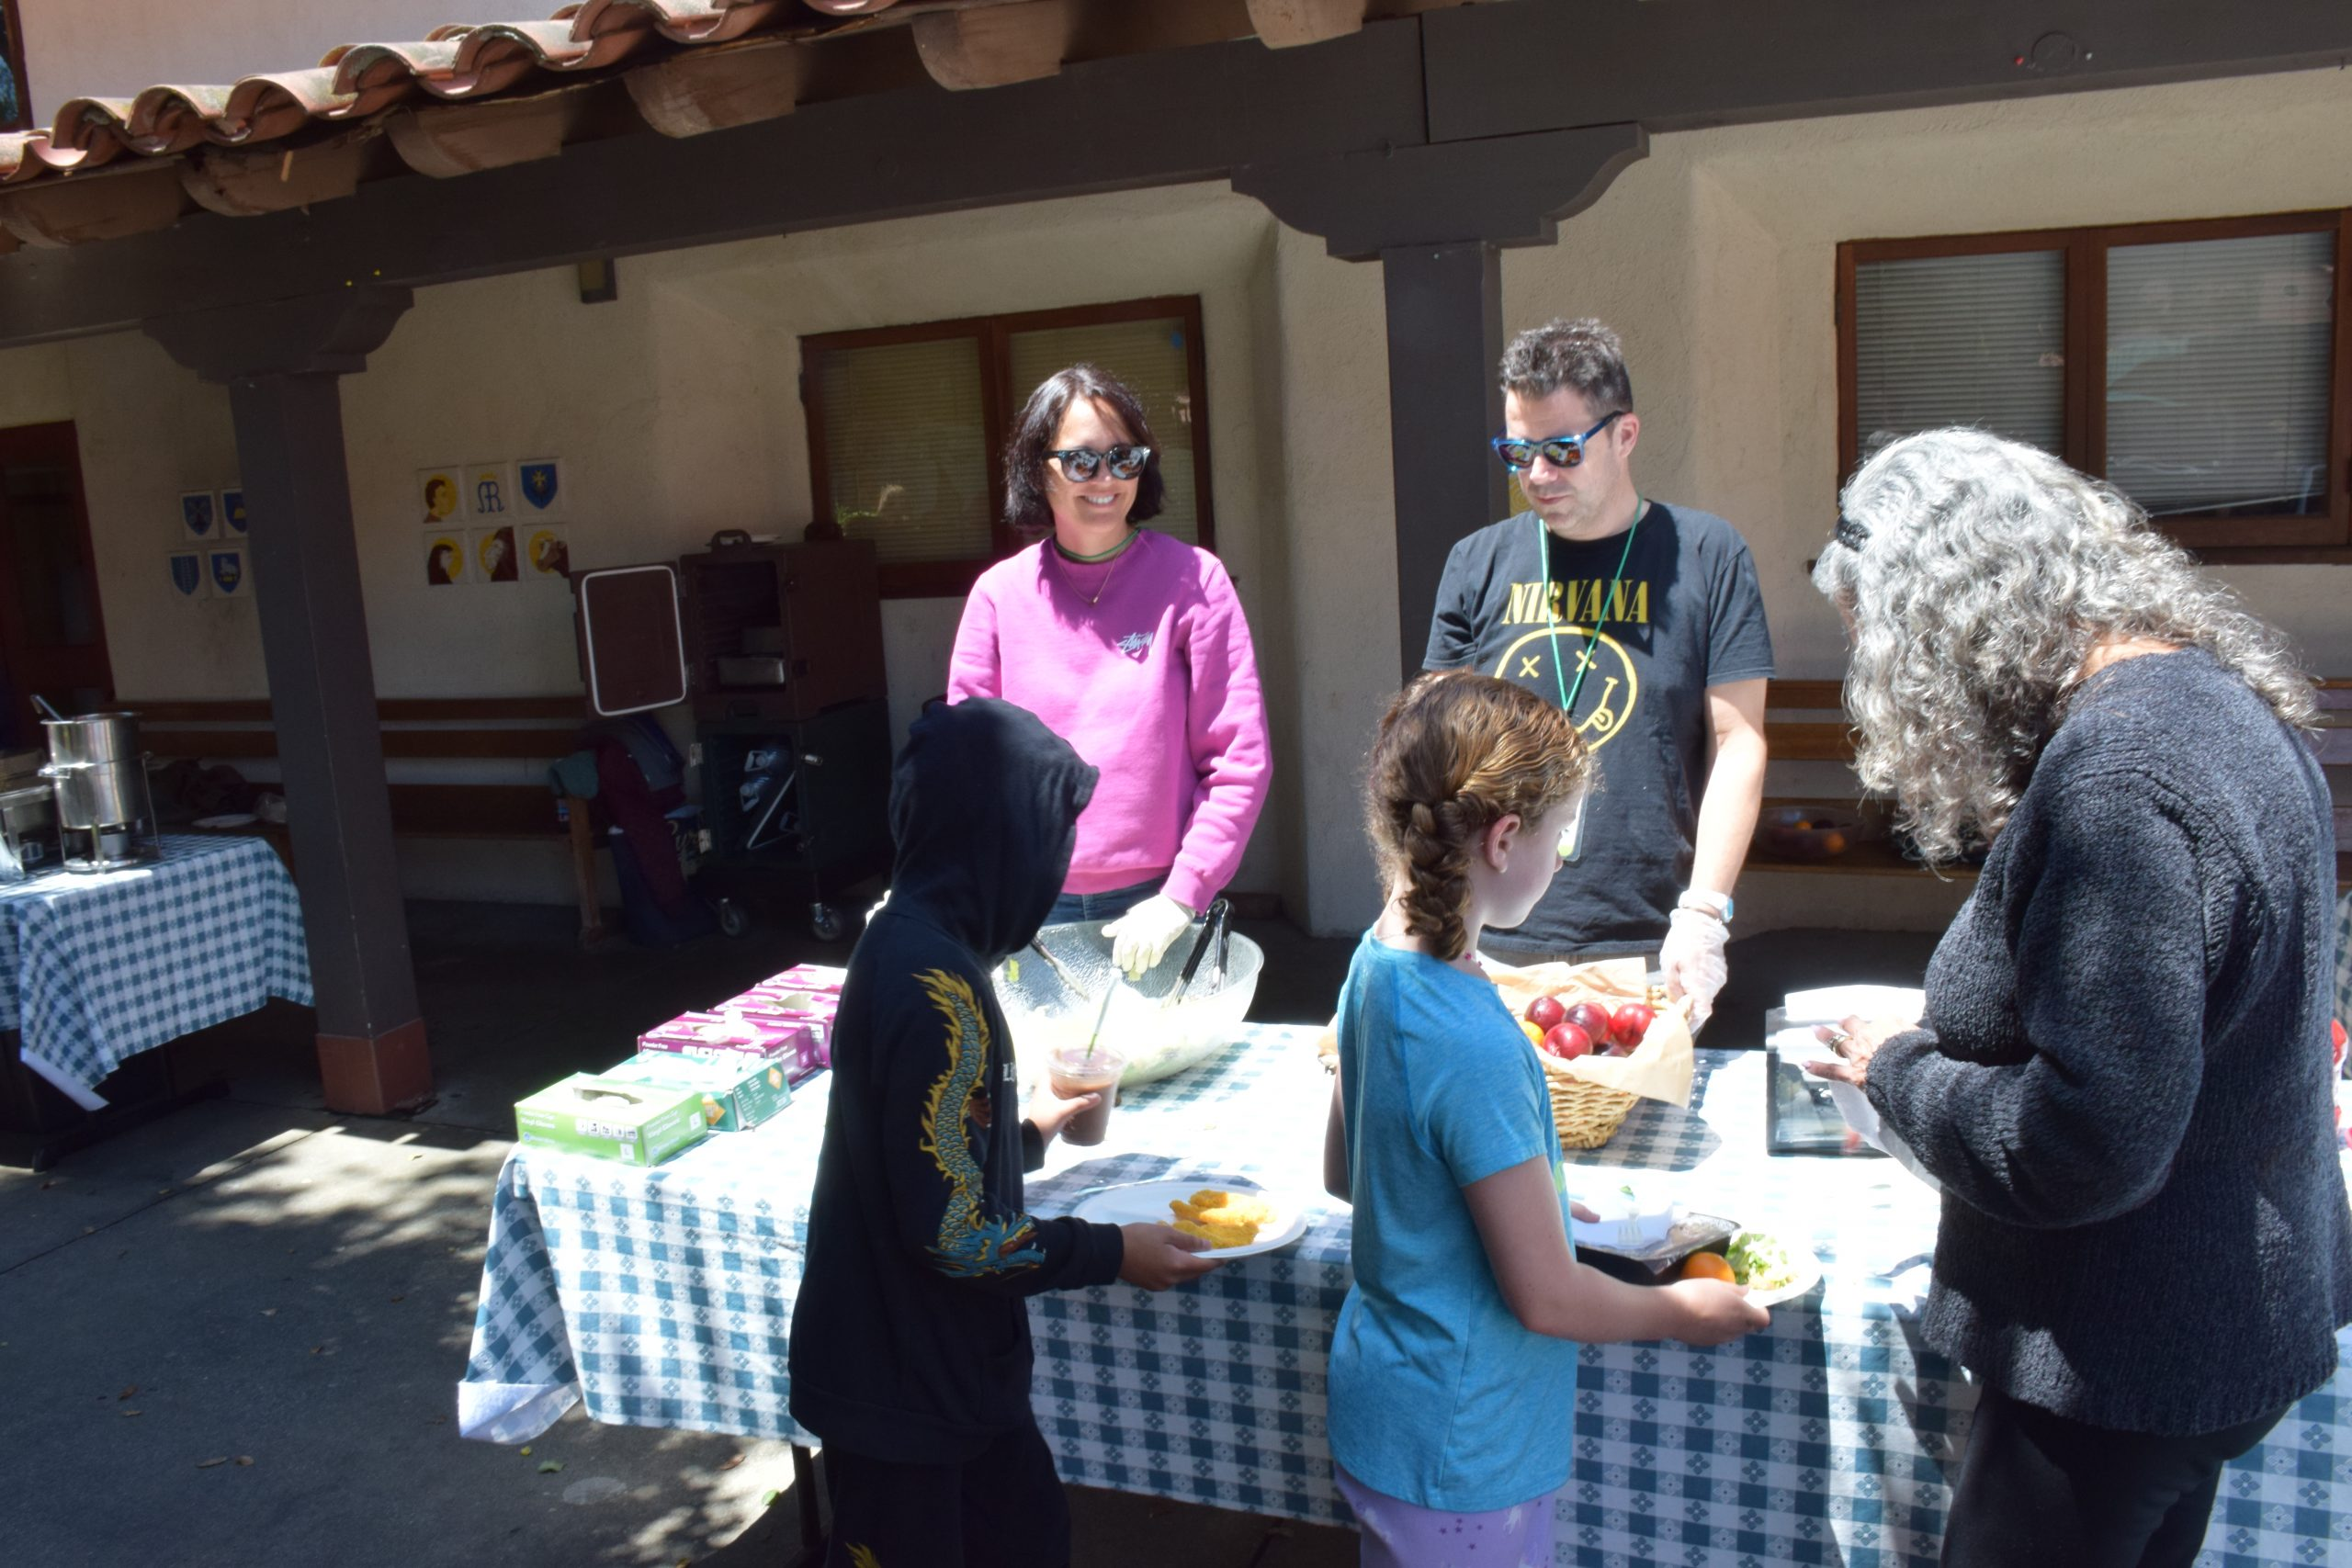 Helping to serve lunch is one of the most popular volunteer opportunities.